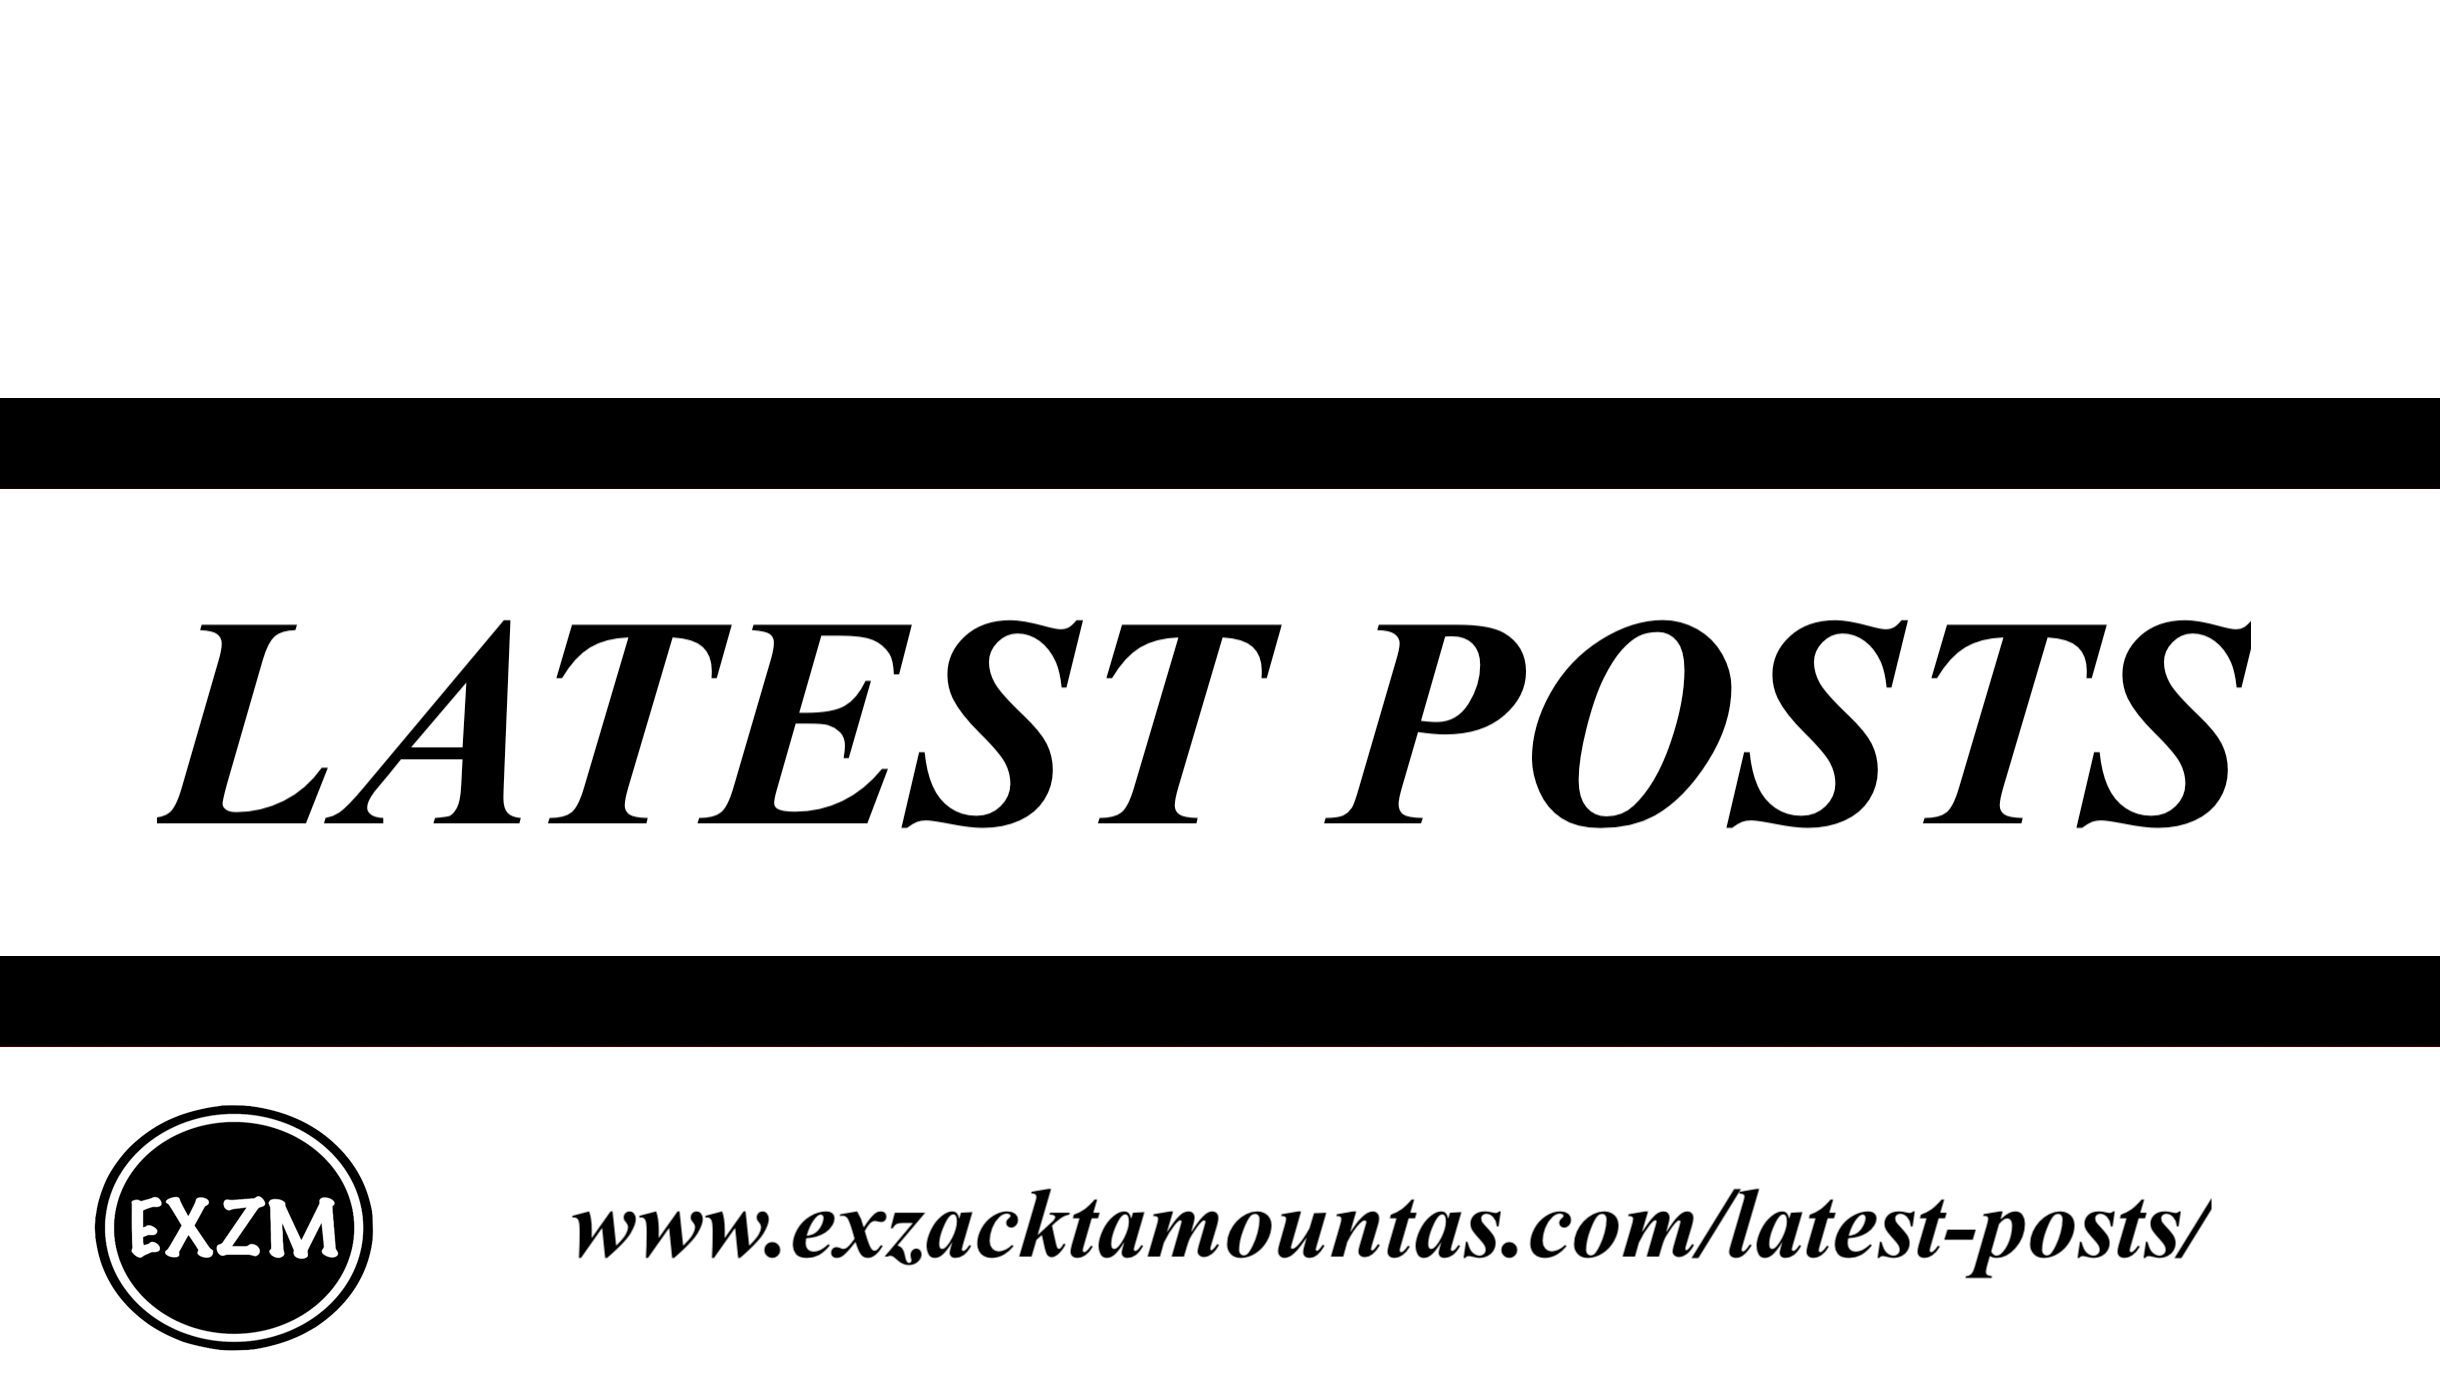 Latest Posts EXZM 12 25 2019